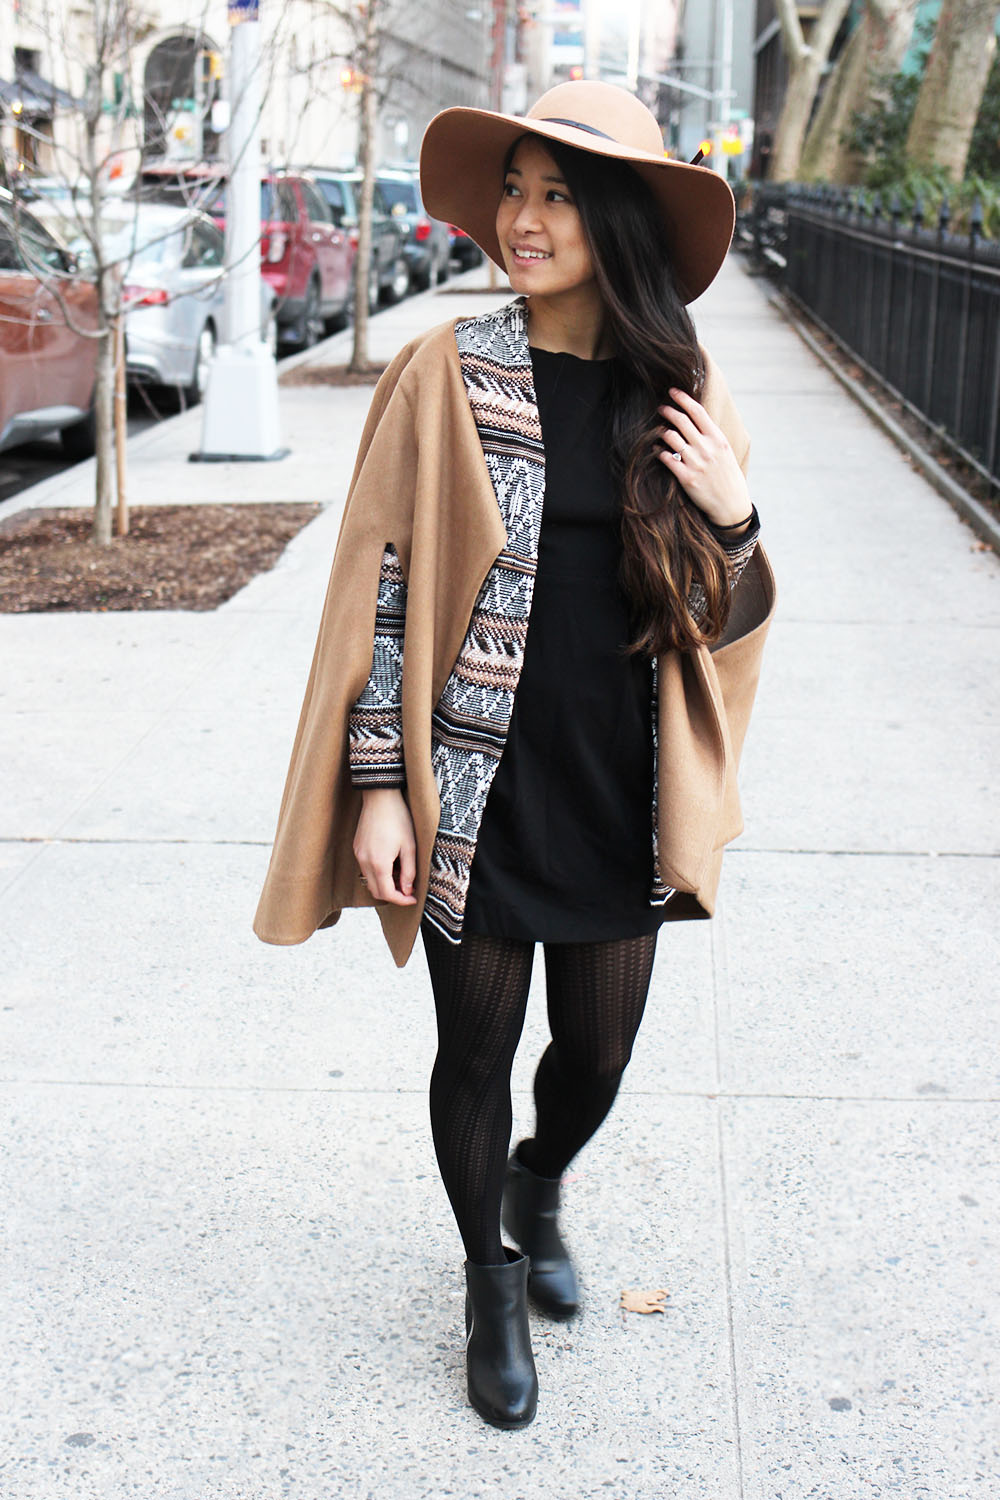 Learn a few tips and tricks for selecting pieces for an outfit and making mornings easier! Featuring a city chic outfit with camel colored drape-y layers.